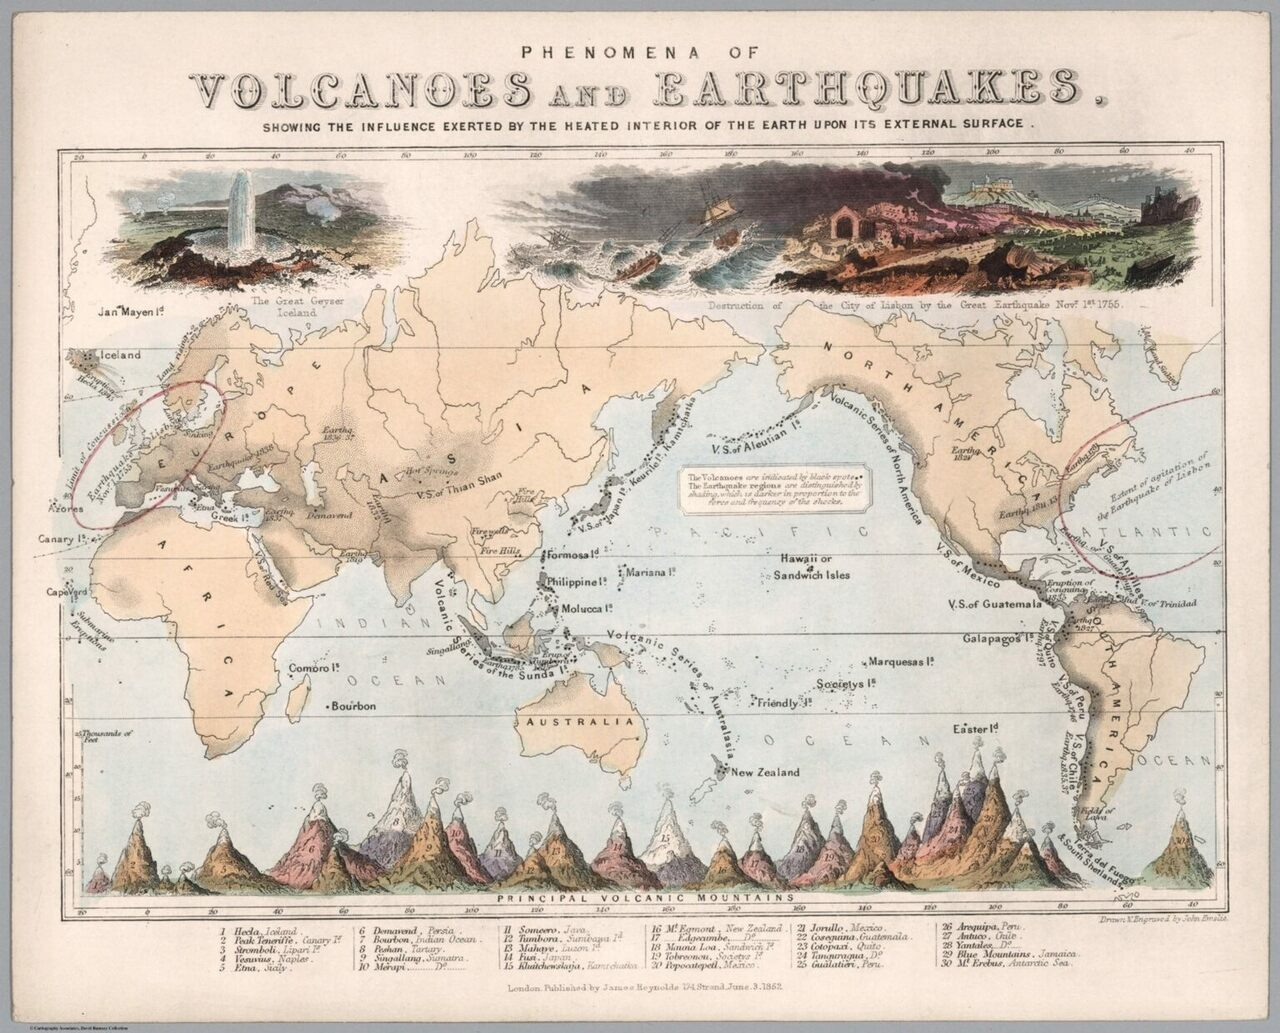 In this map, <em>Phenomena of Volcanoes and Earthquakes,</em> chartmakers John Emslie and James Reynolds show the distribution and heights of all the active volcanoes in the 1800s.